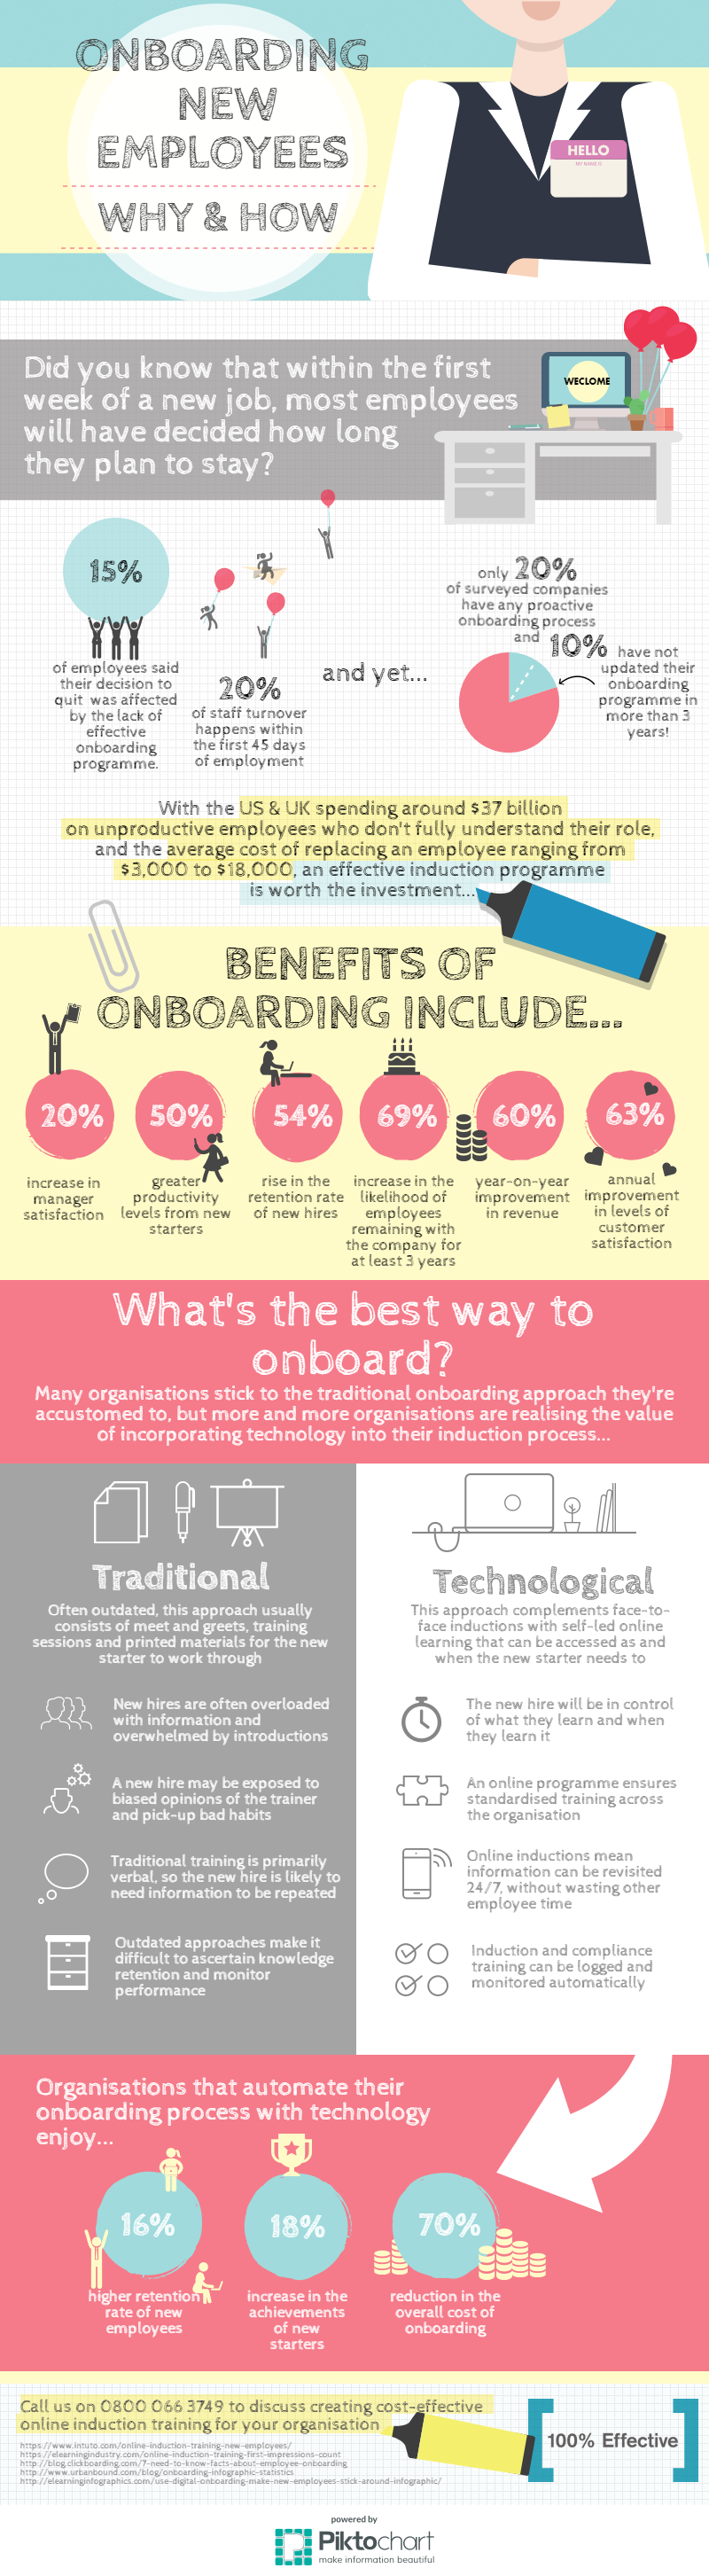 Onboarding new starters [INFOGRAPHIC]